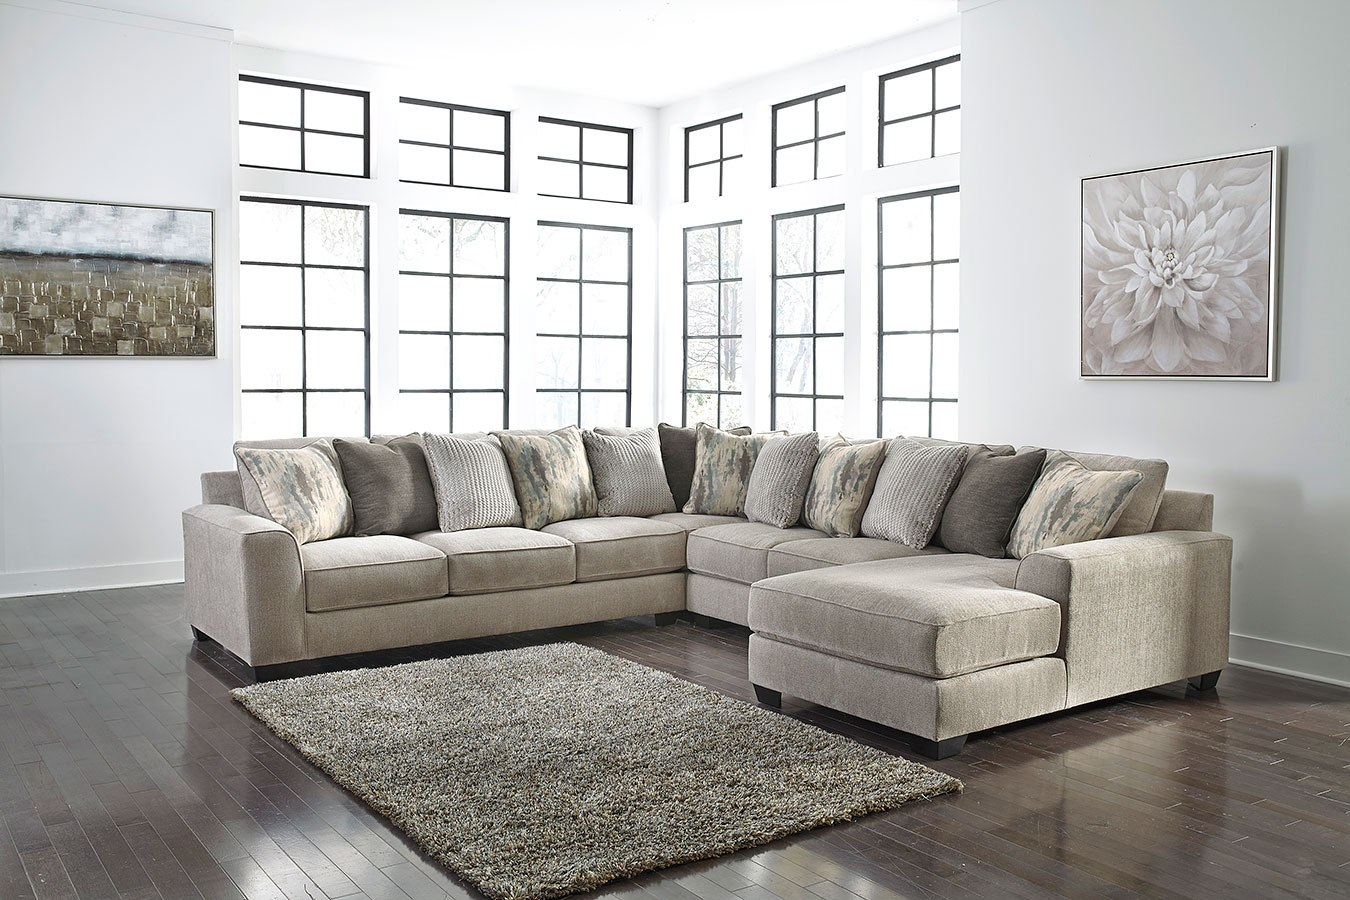 Wondrous Ardsley Pewter Large Modular Sectional Ncnpc Chair Design For Home Ncnpcorg